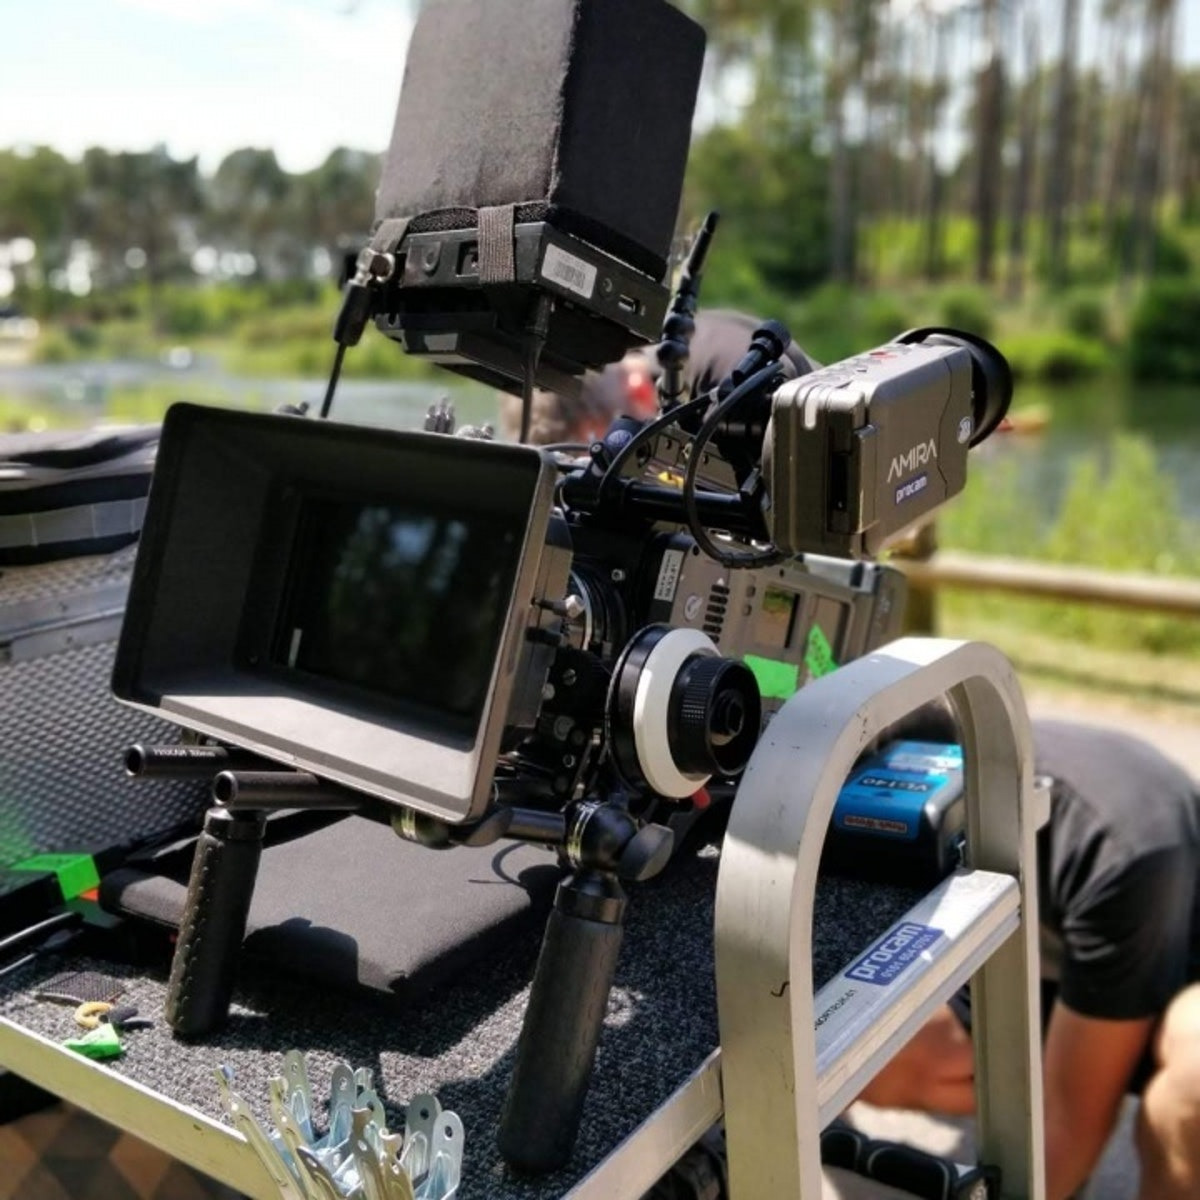 A camera set up BTS for Center Parcs This is Family shoot